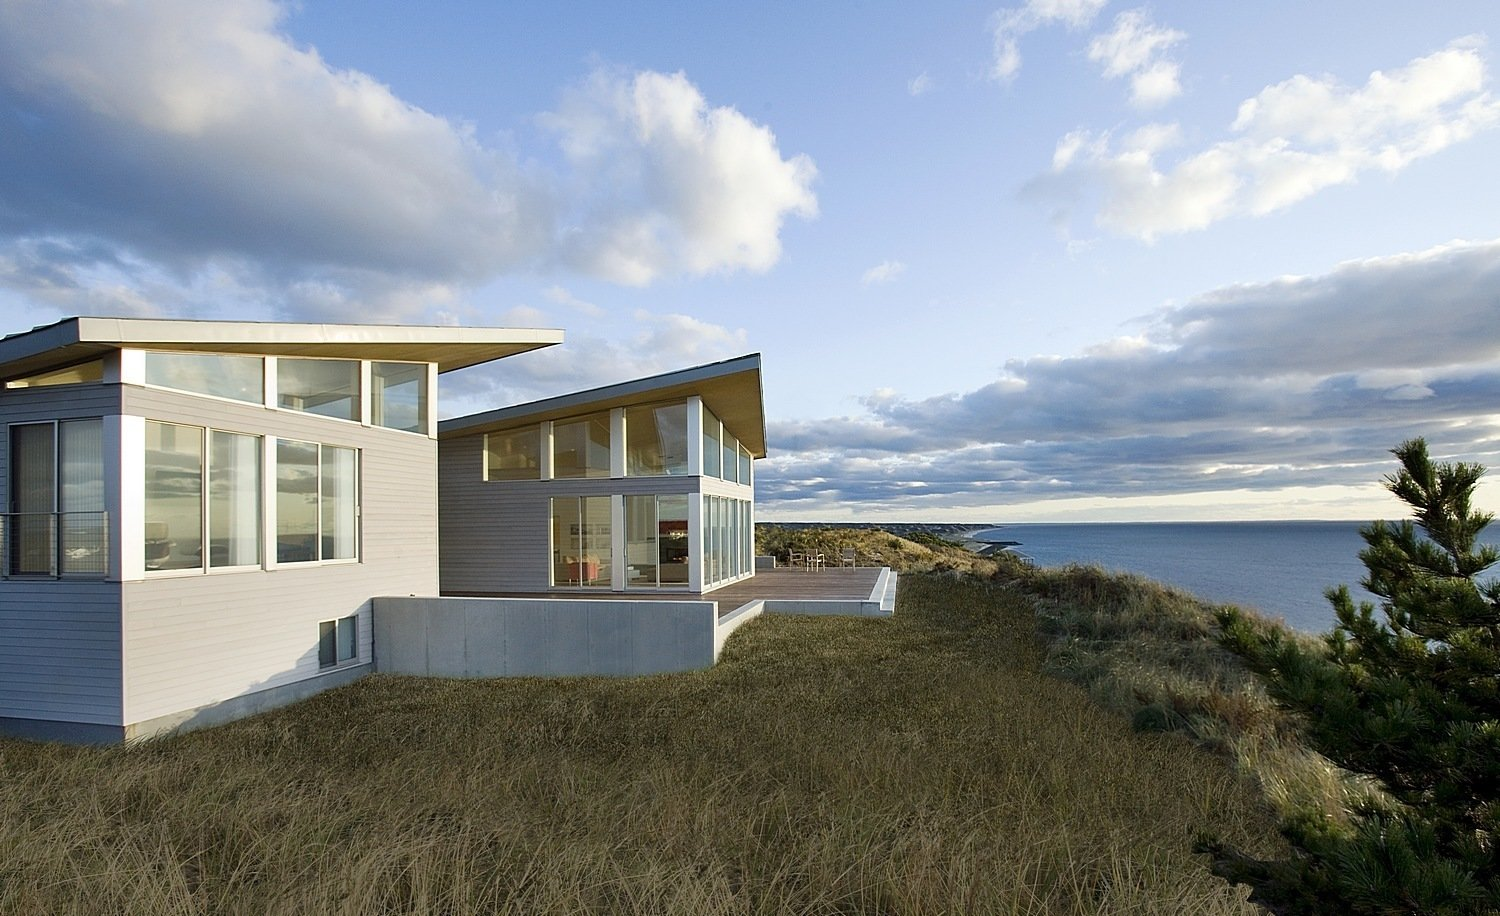 Project Name: Truro Beach House